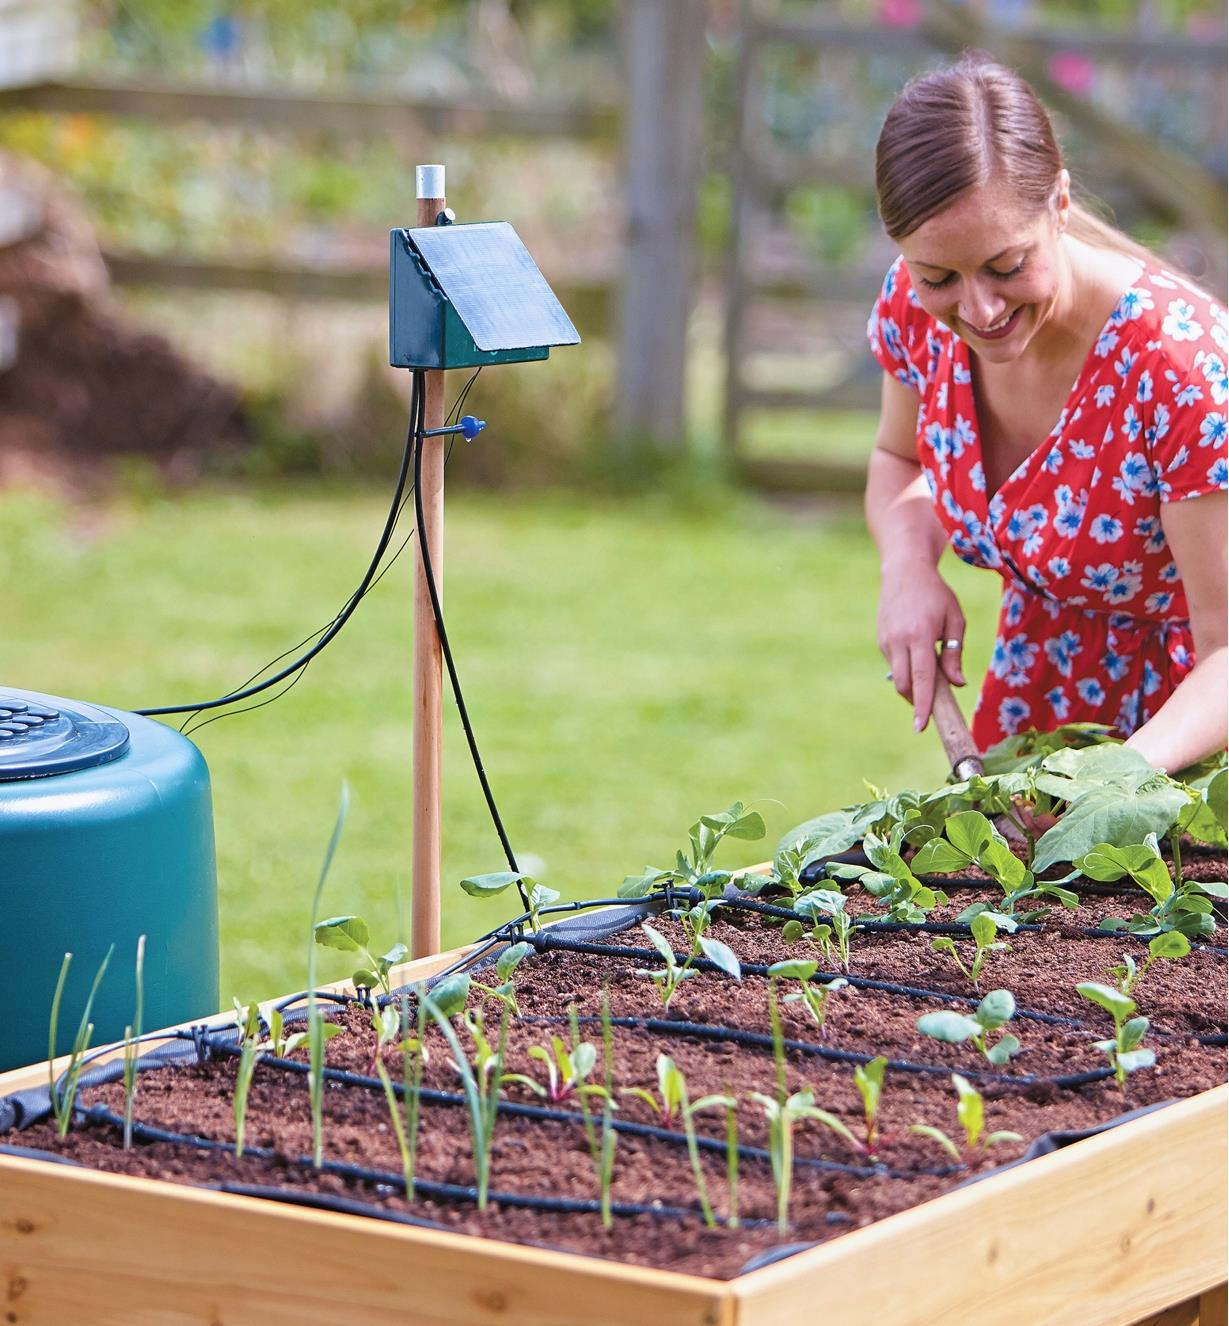 A woman tends a small raised garden being watered with the solar drip watering kit